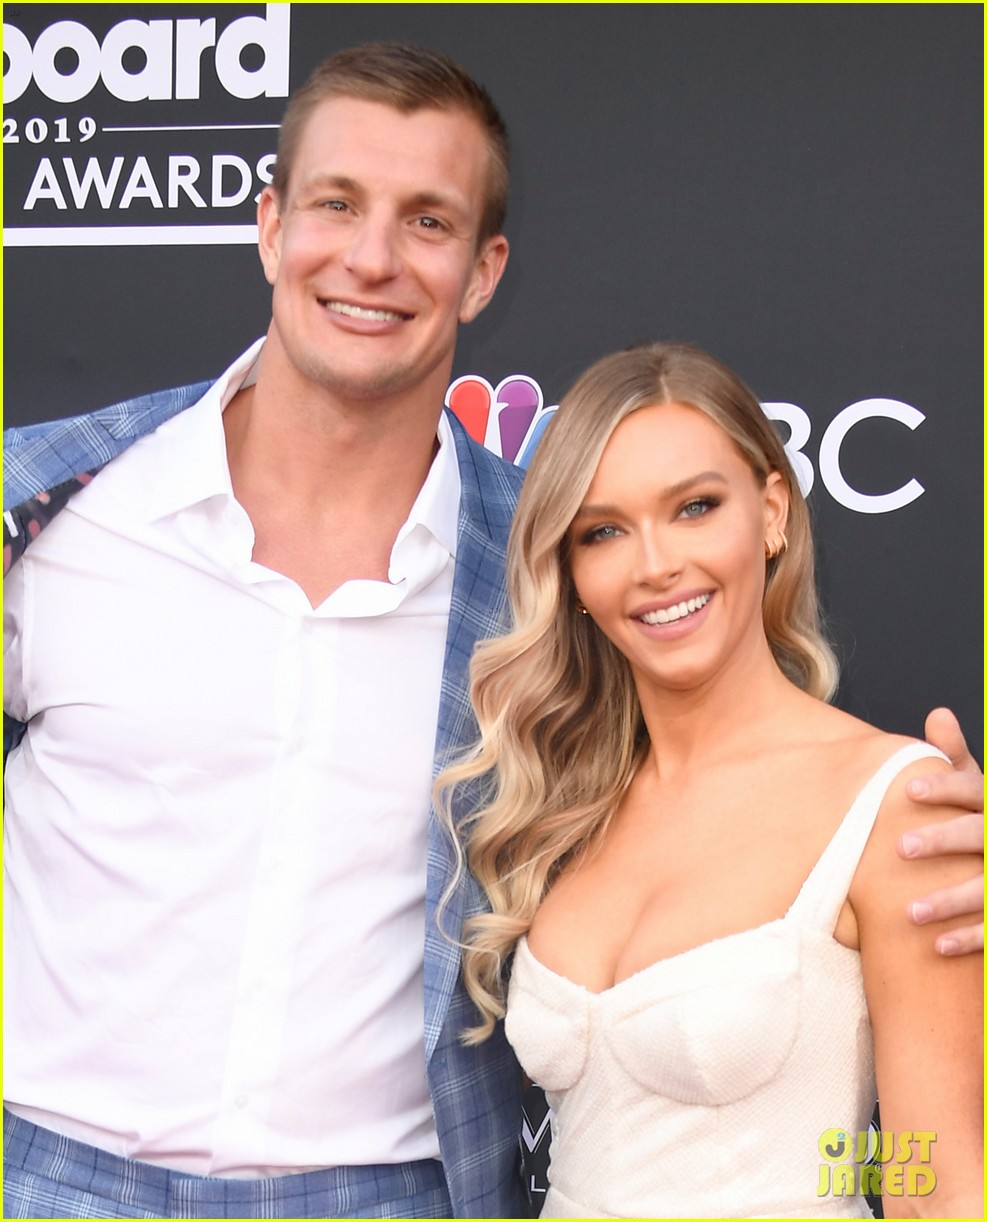 Camille Kostek Ex Boyfriends: NFL Star Rob Gronkowski Attends BBMAs 2019 With Girlfriend